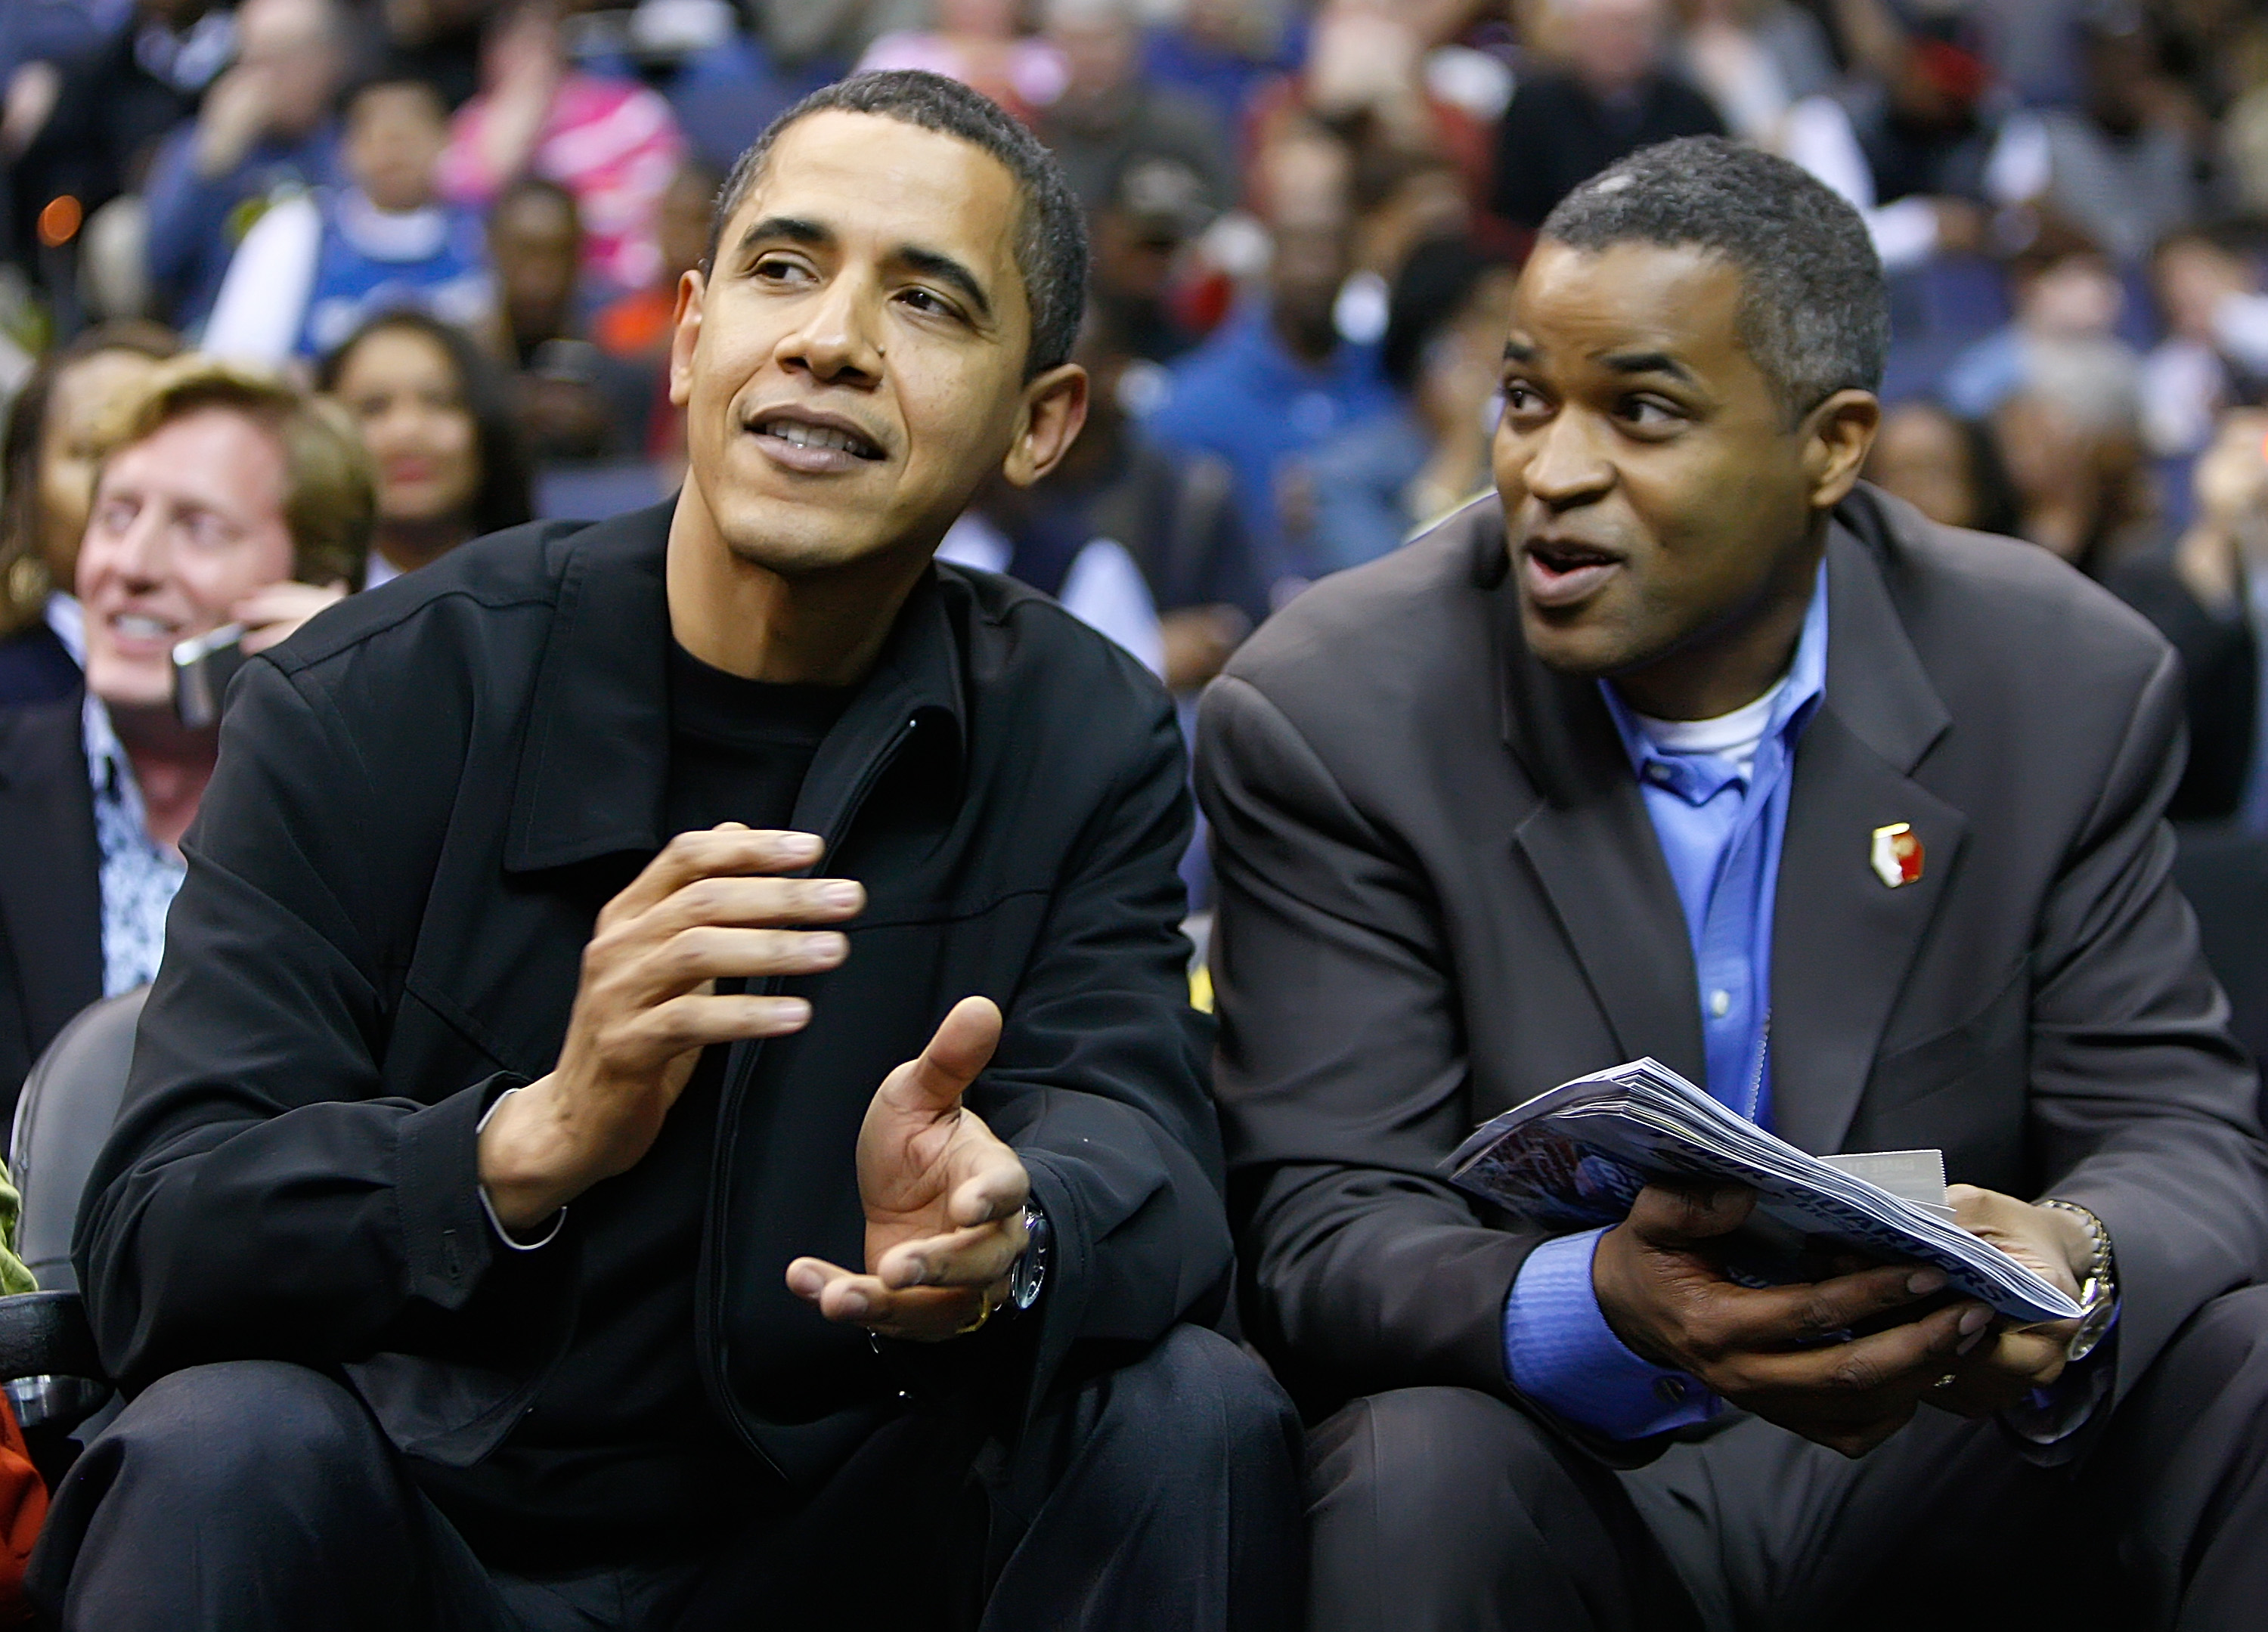 President Obama talks with friend Marty Nesbitt at a Bulls-Wizards game in 2009.